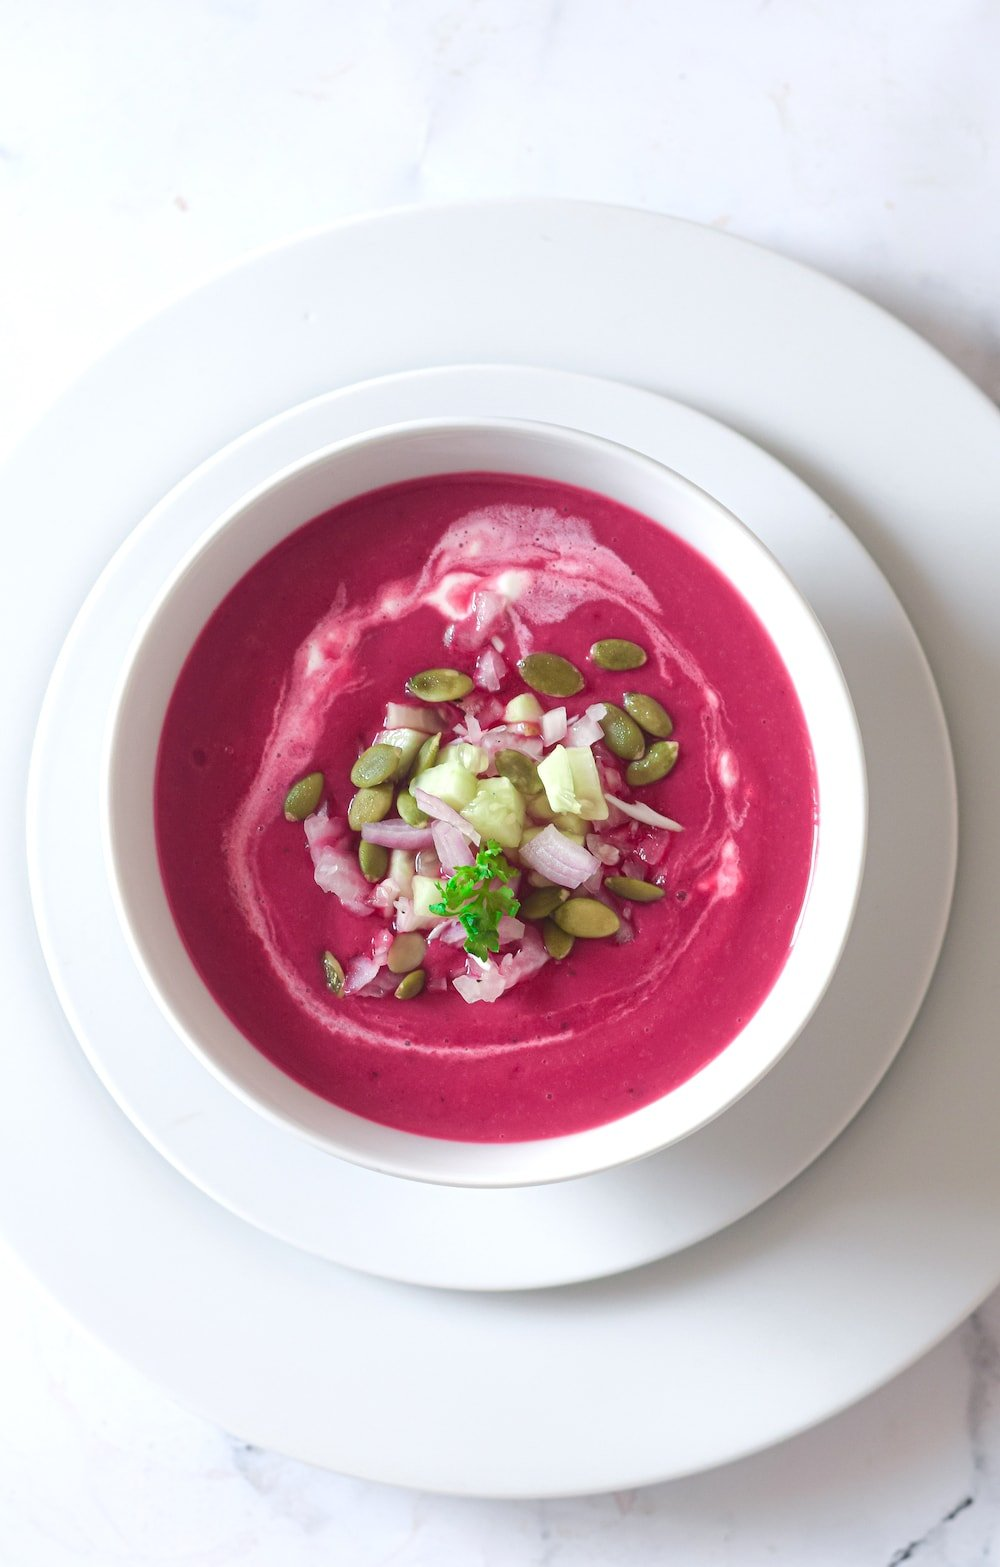 Overhead shot of gazpacho de remolacha or chilled beet soup in a white bowl.